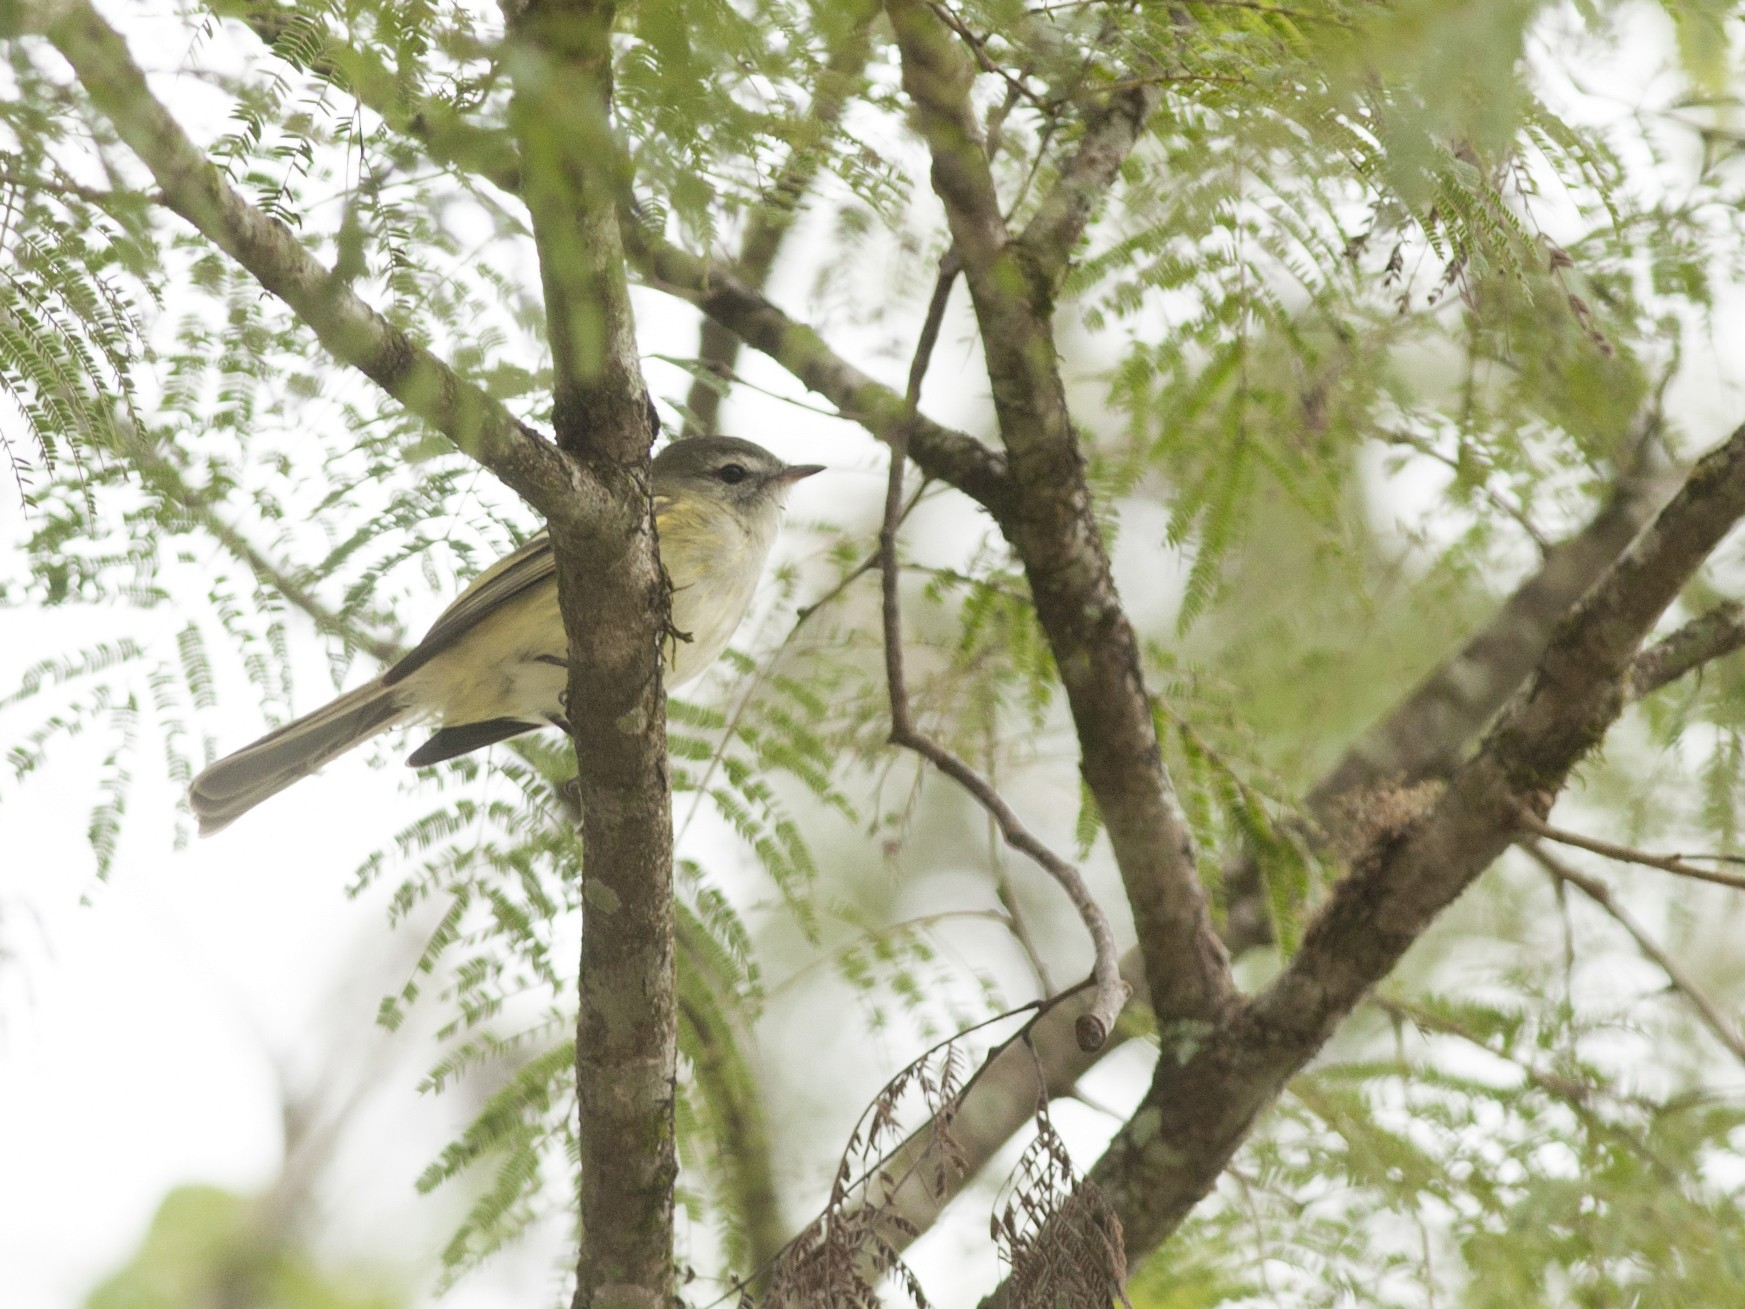 Sclater's Tyrannulet - Giselle Mangini